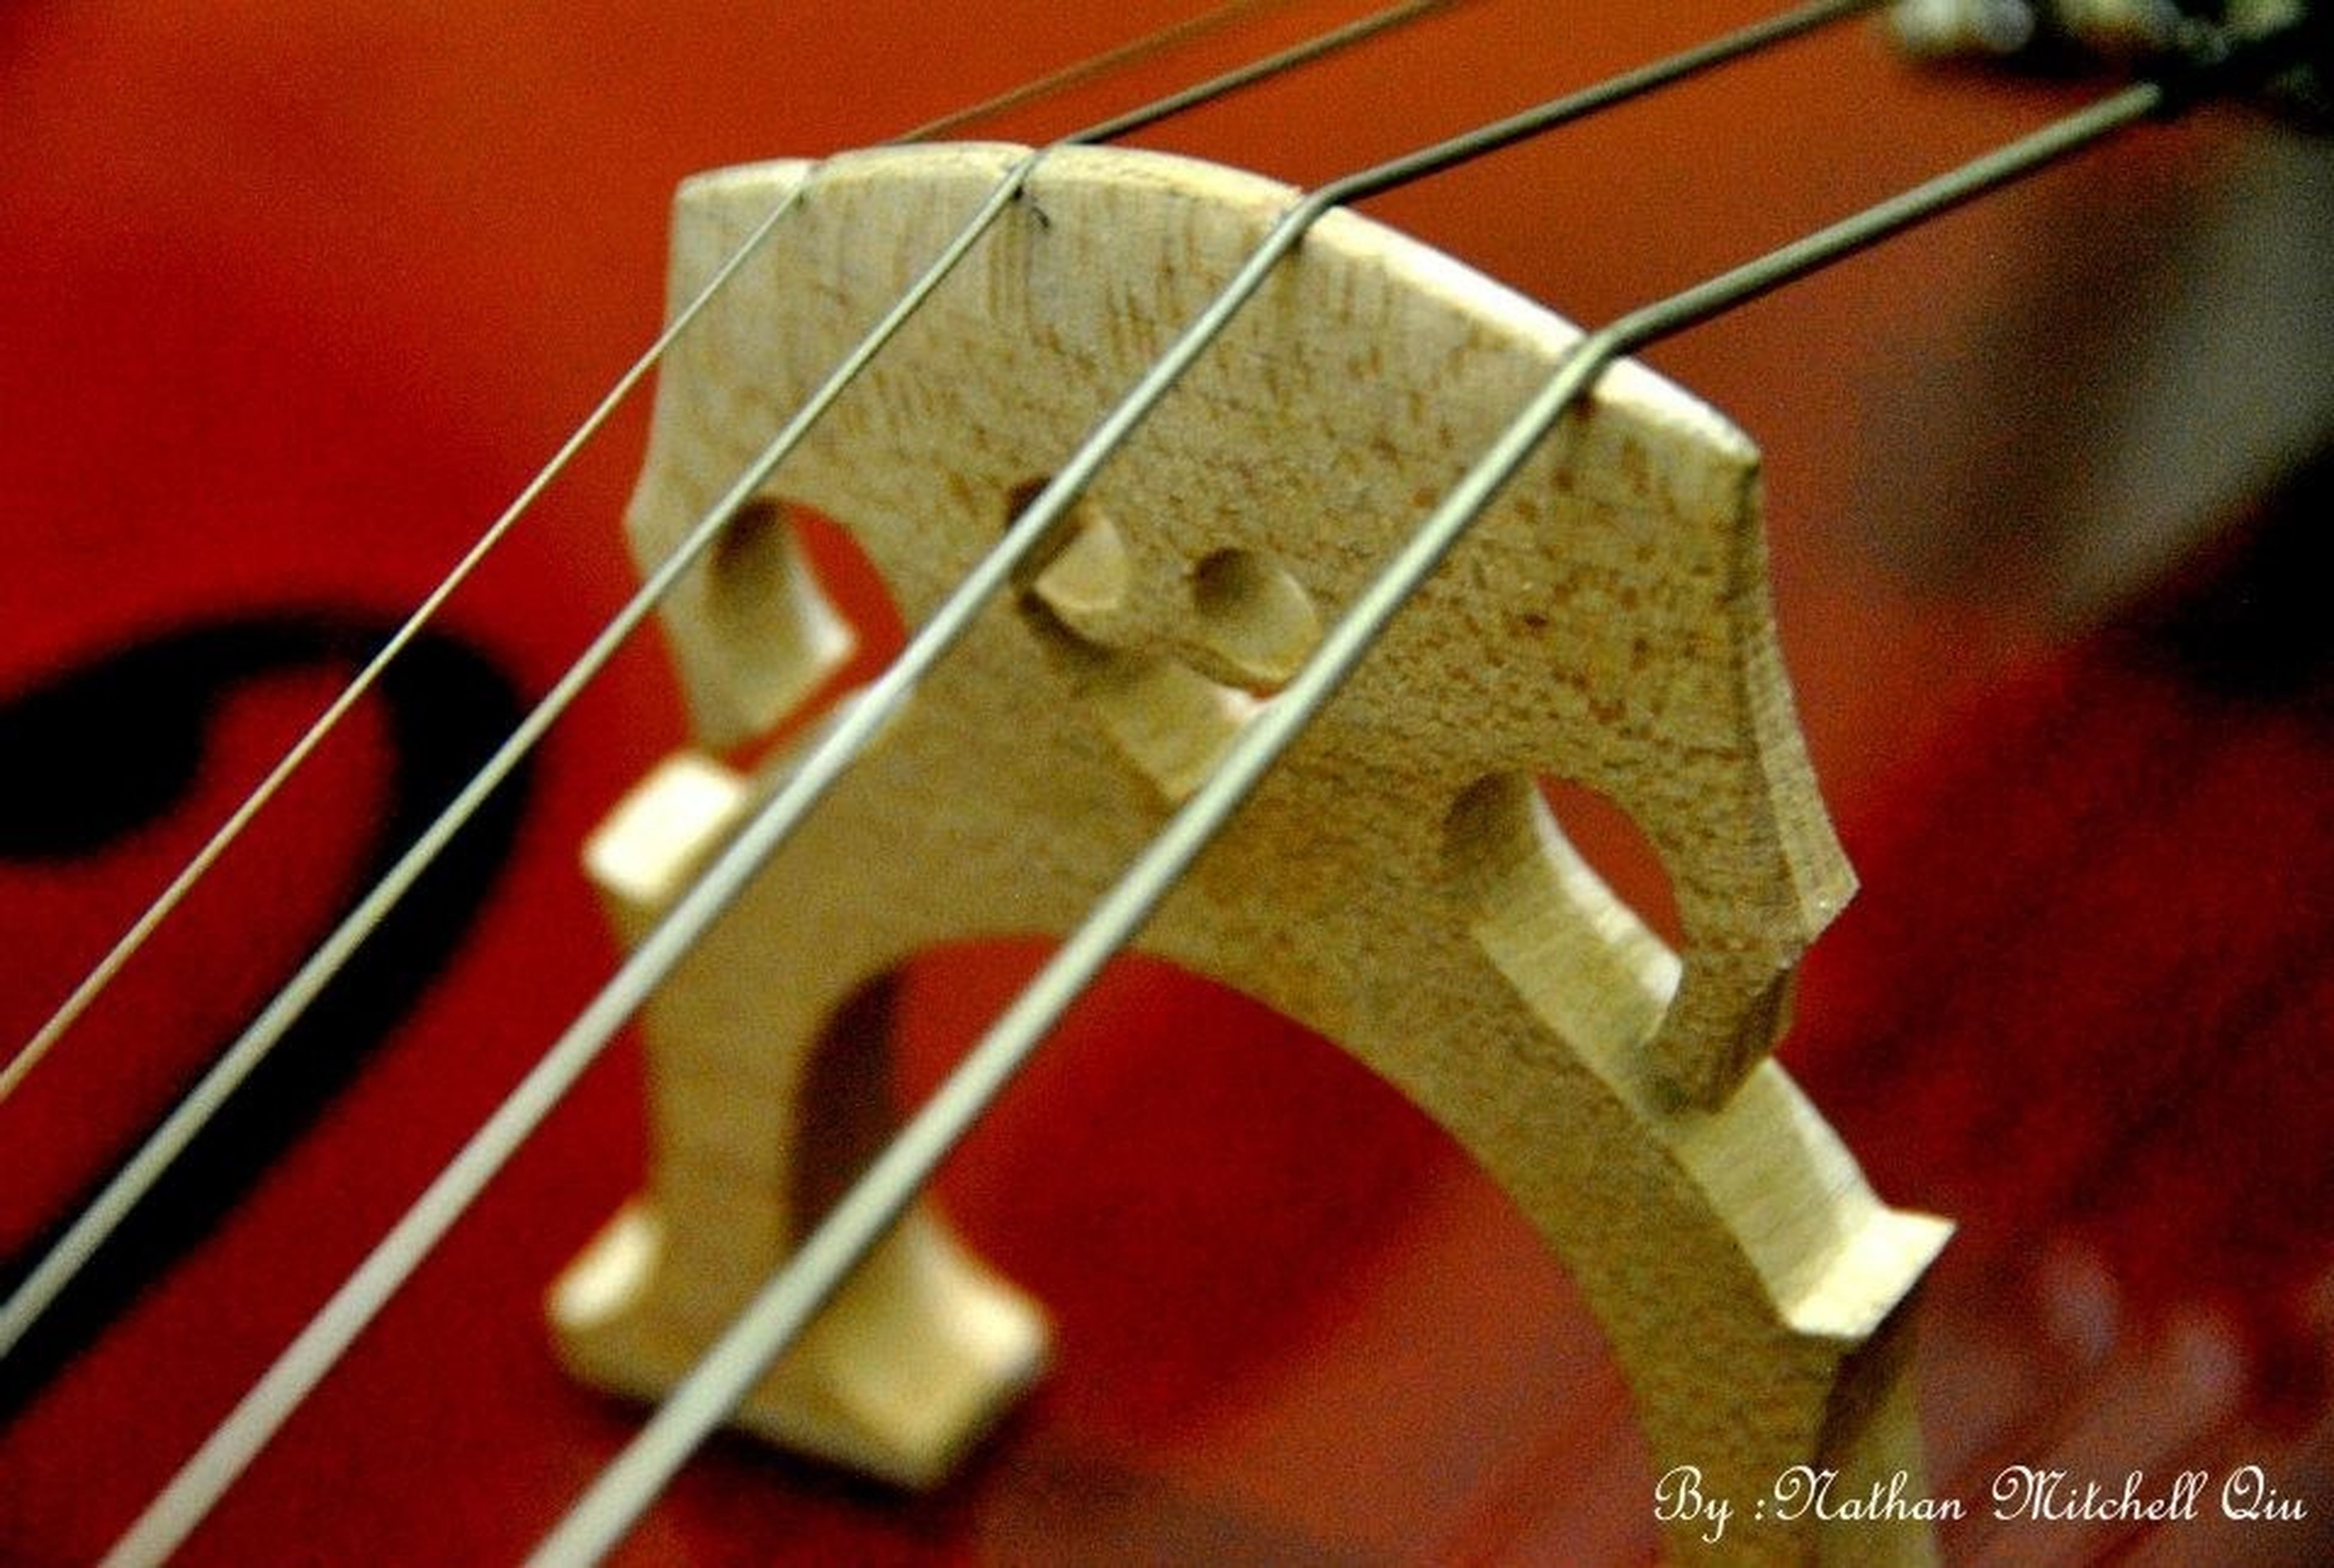 indoors, close-up, red, focus on foreground, still life, selective focus, metal, no people, high angle view, food and drink, table, part of, musical instrument, arts culture and entertainment, music, guitar, plastic, container, cropped, day